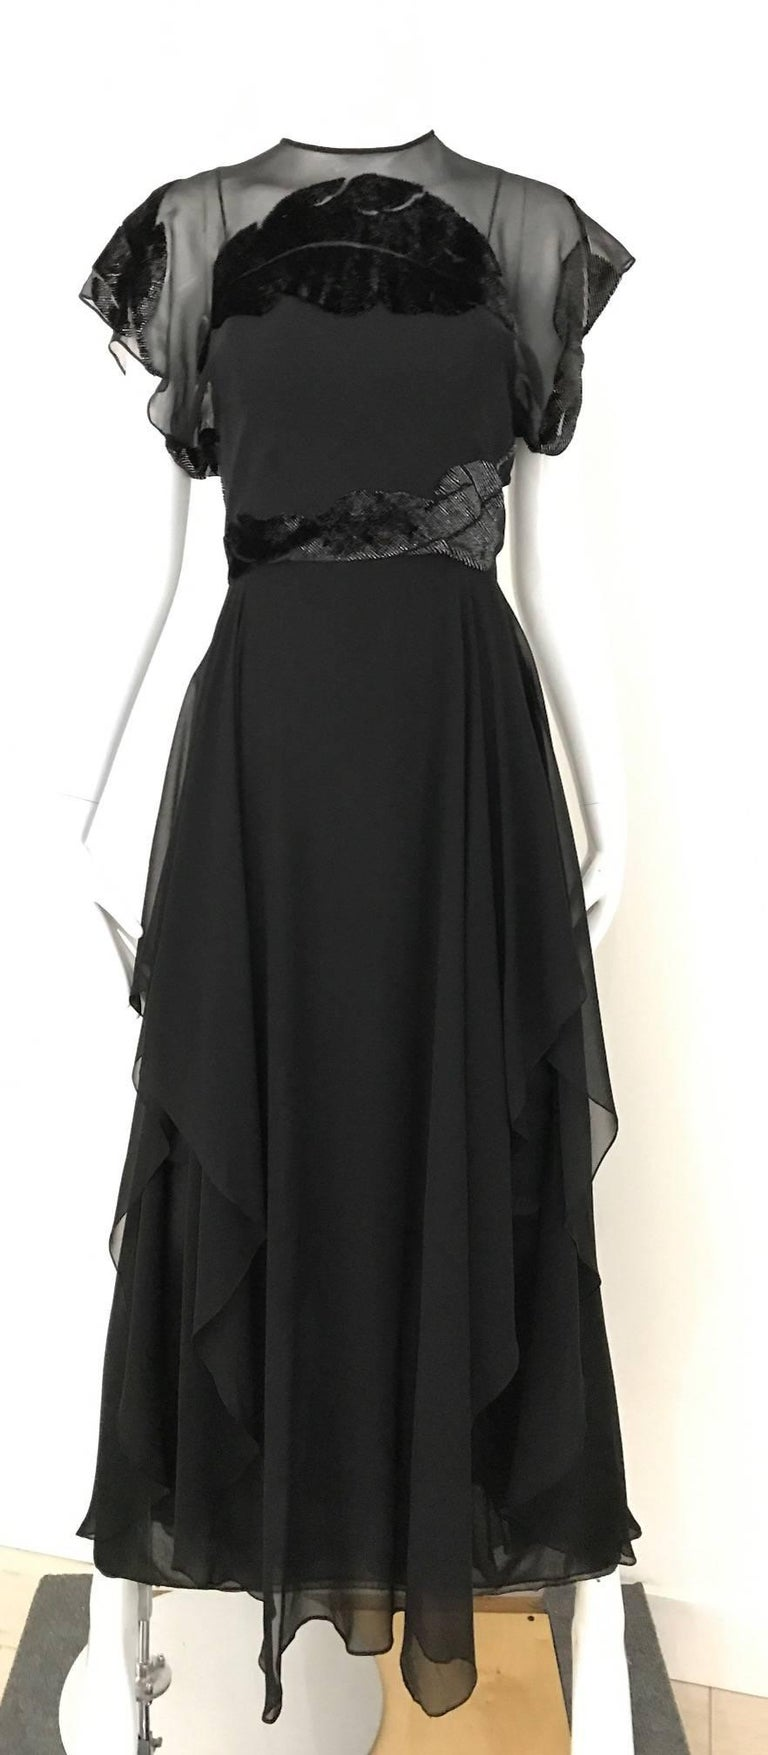 Beautiful Vintage 1970s Neiman Marcus Black Silk Chiffon Dress with overlay velvet cut out leaves  pattern on the bodice and the back. There are three layer of silk chiffon. Size: 2/4 Small Bust: 34 inch/ Waist: 26 inch/ Hip : Open/ Dress Length :